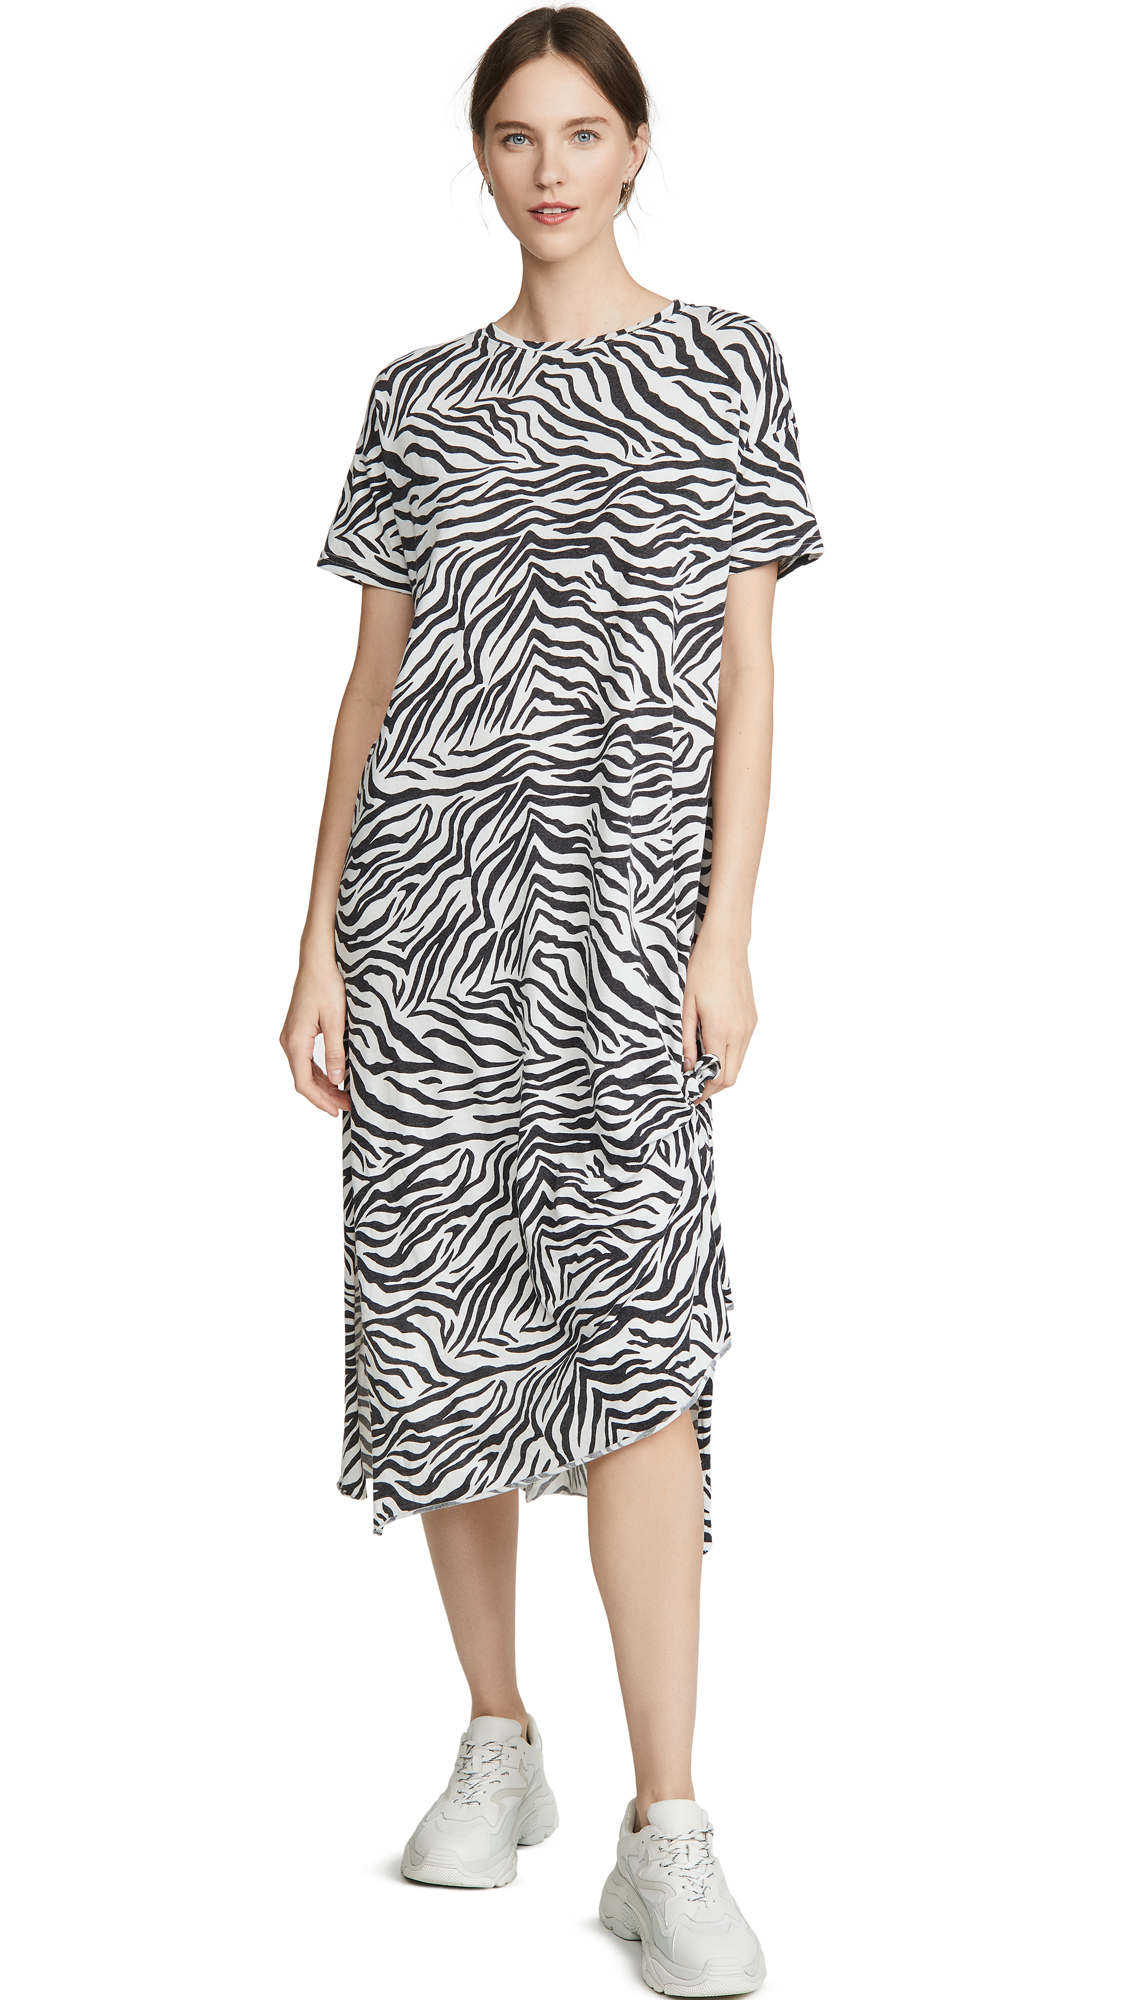 Buy Z Supply Zebra Side Knot Dress online beautiful Z Supply Clothing, Dresses